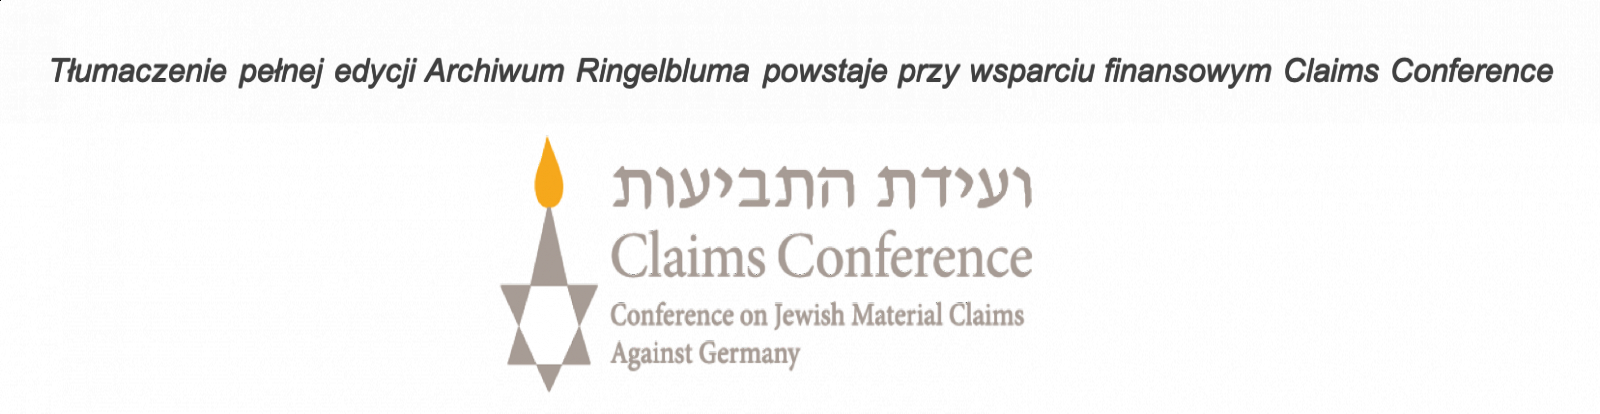 claims_logo.png [107.22 KB]